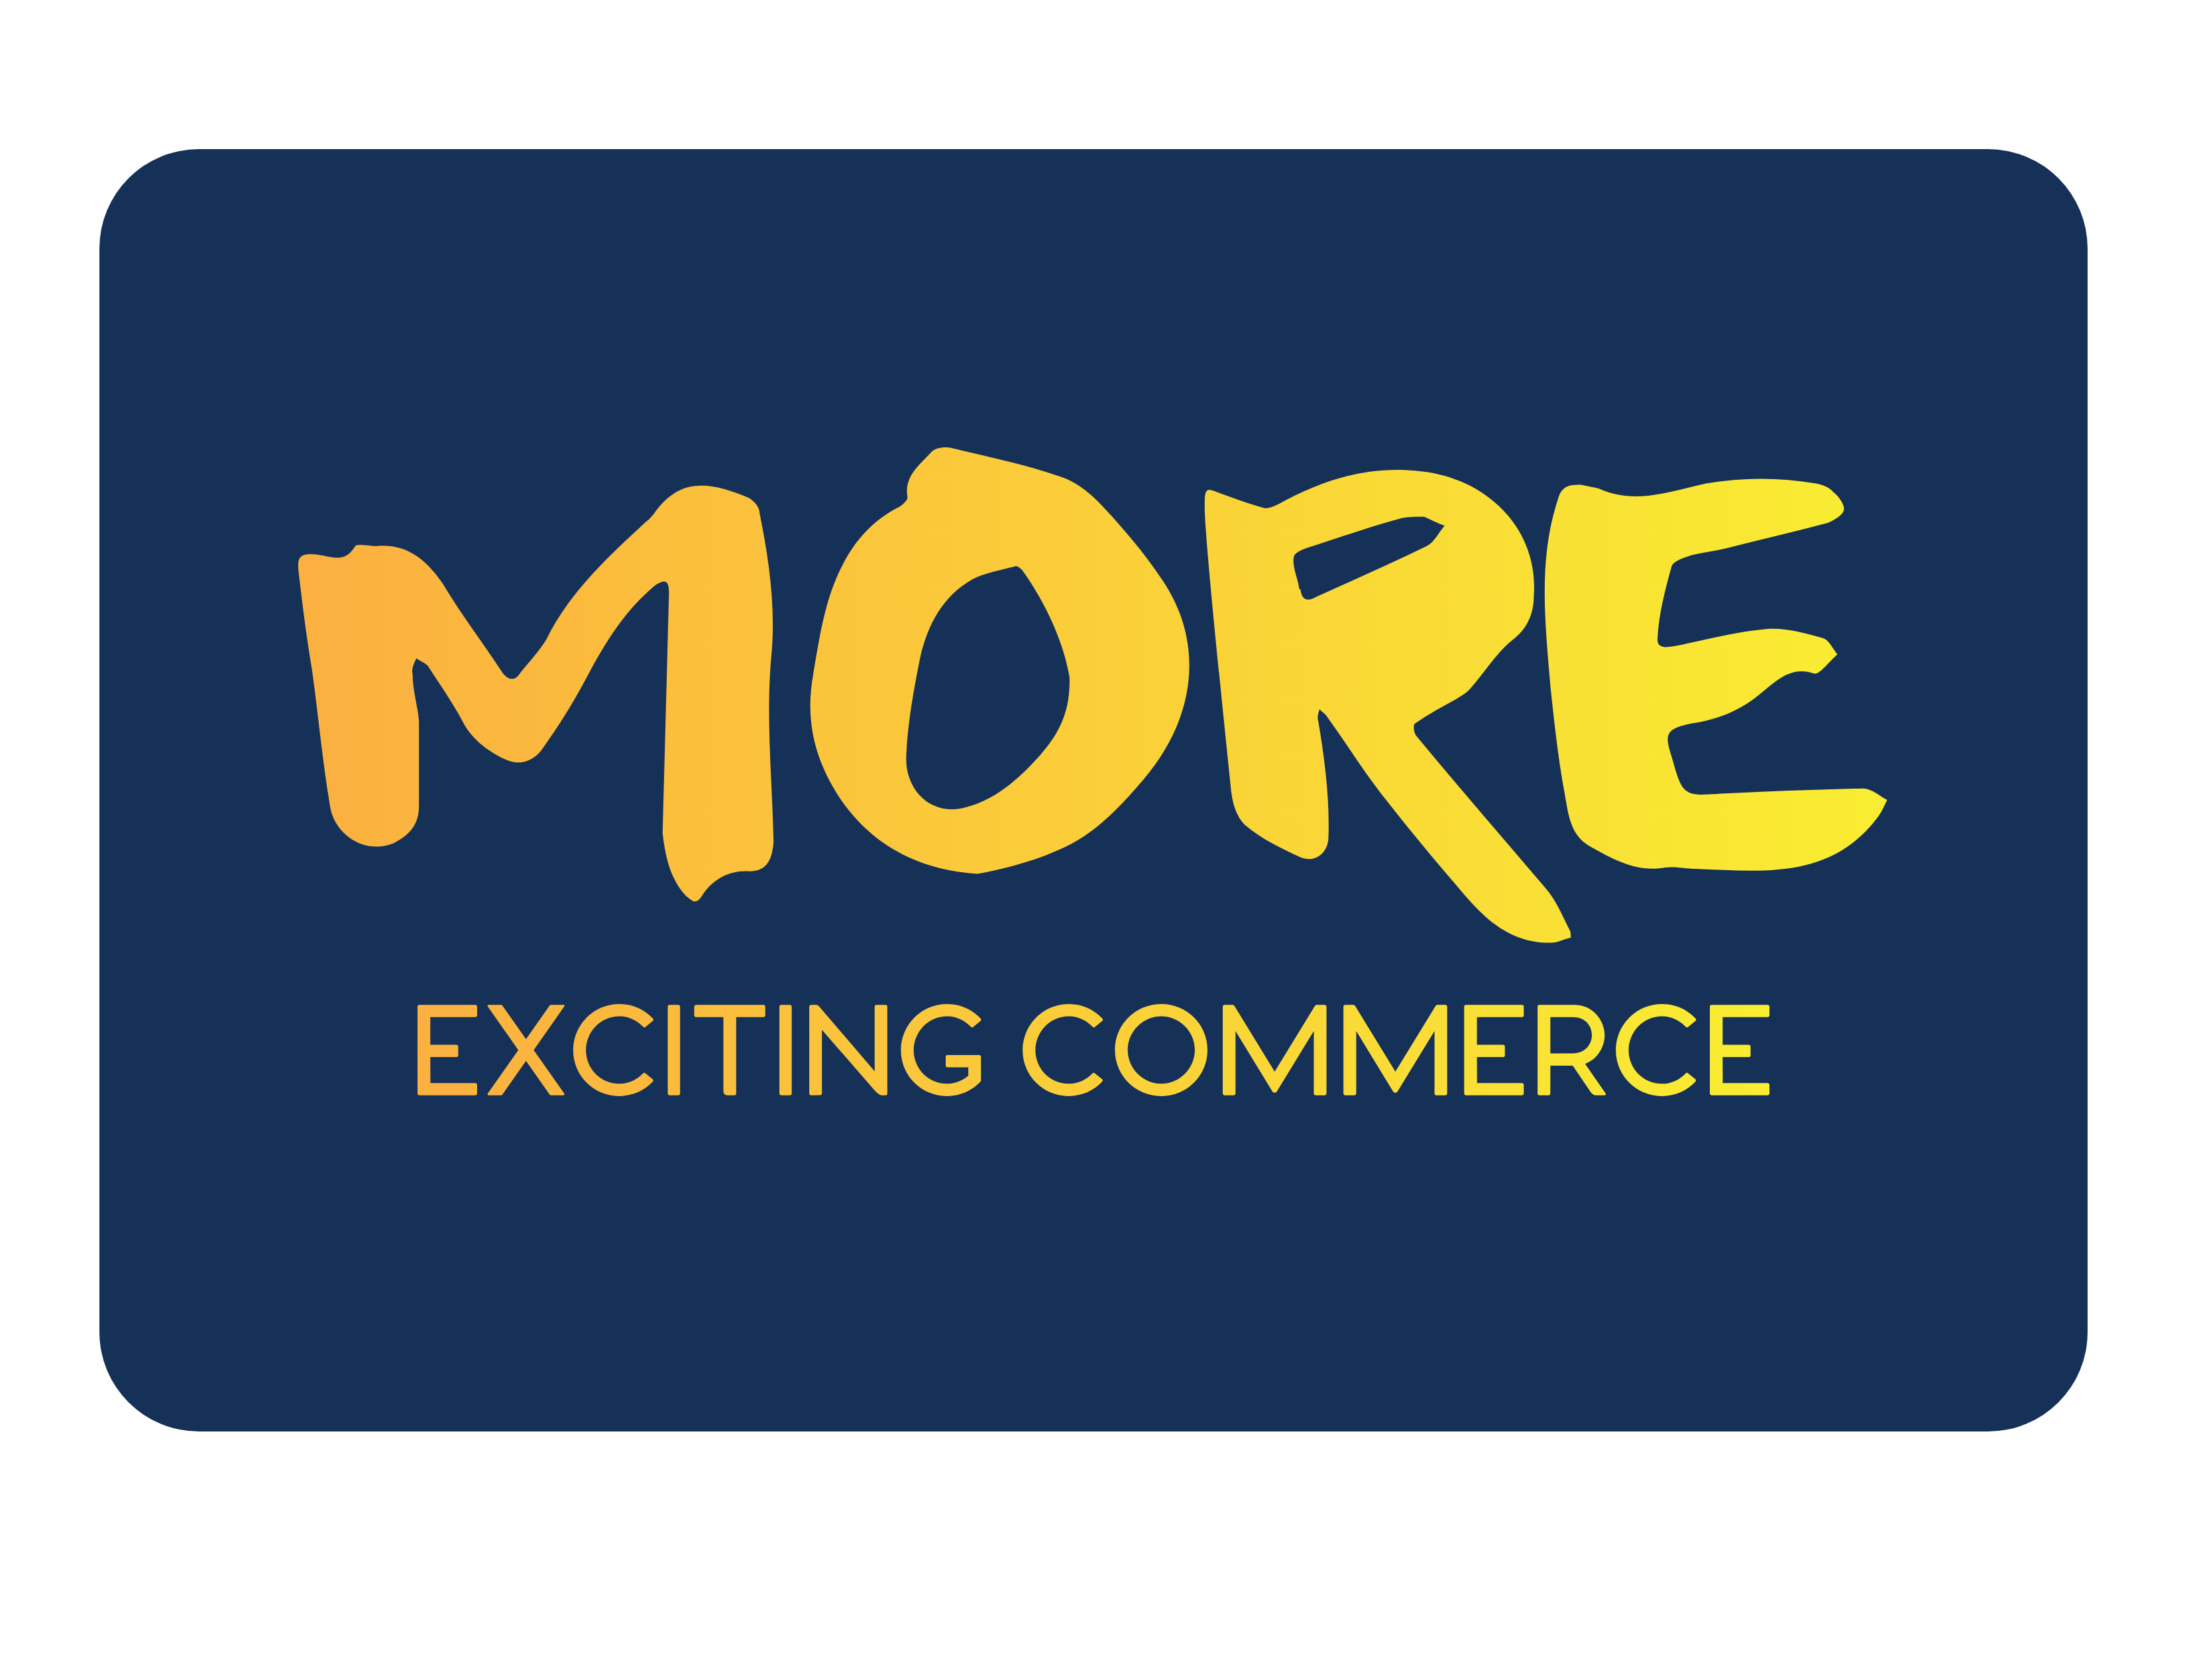 More Exciting Commerce